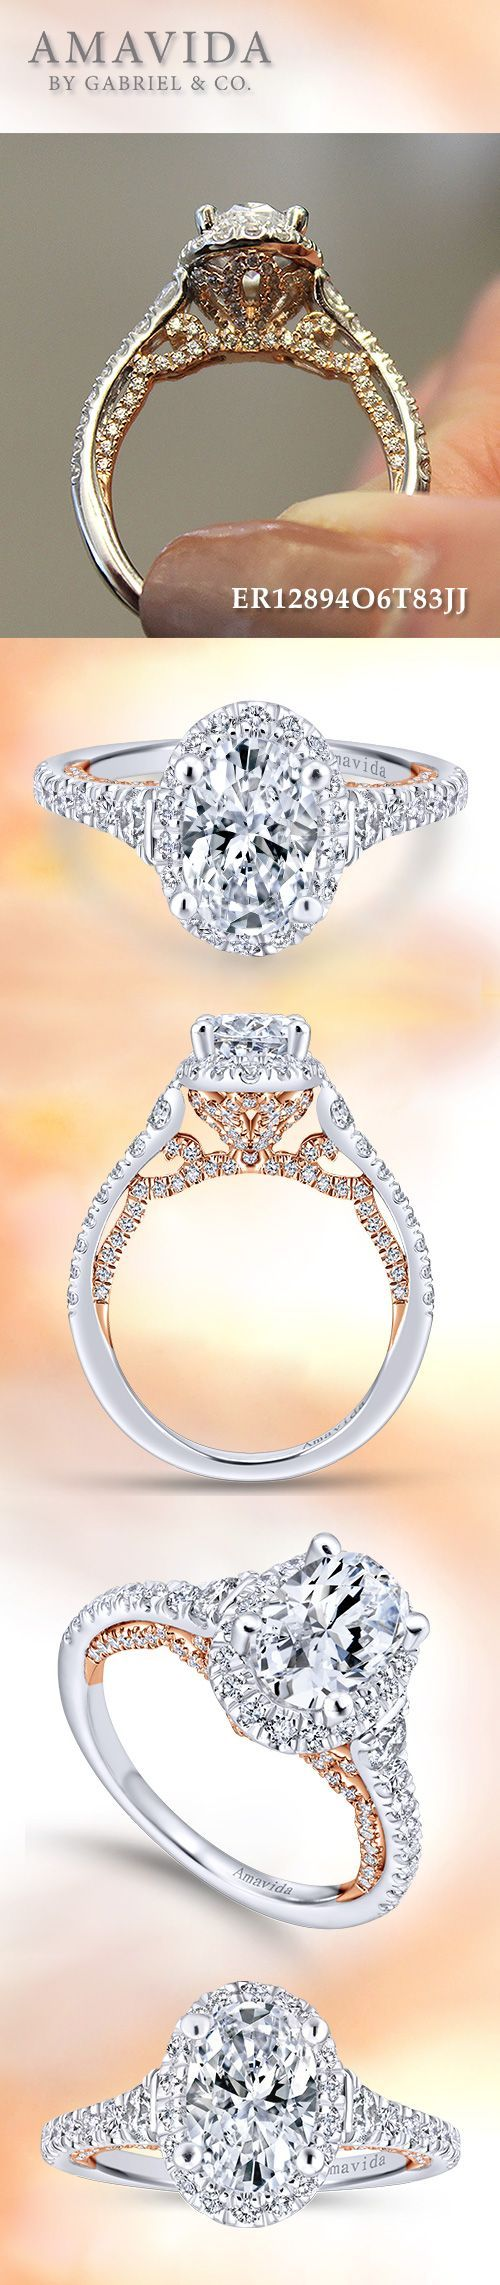 Amavida by Gabriel & Co. - 18k White/Pink Gold Oval Halo Engagement Rings.